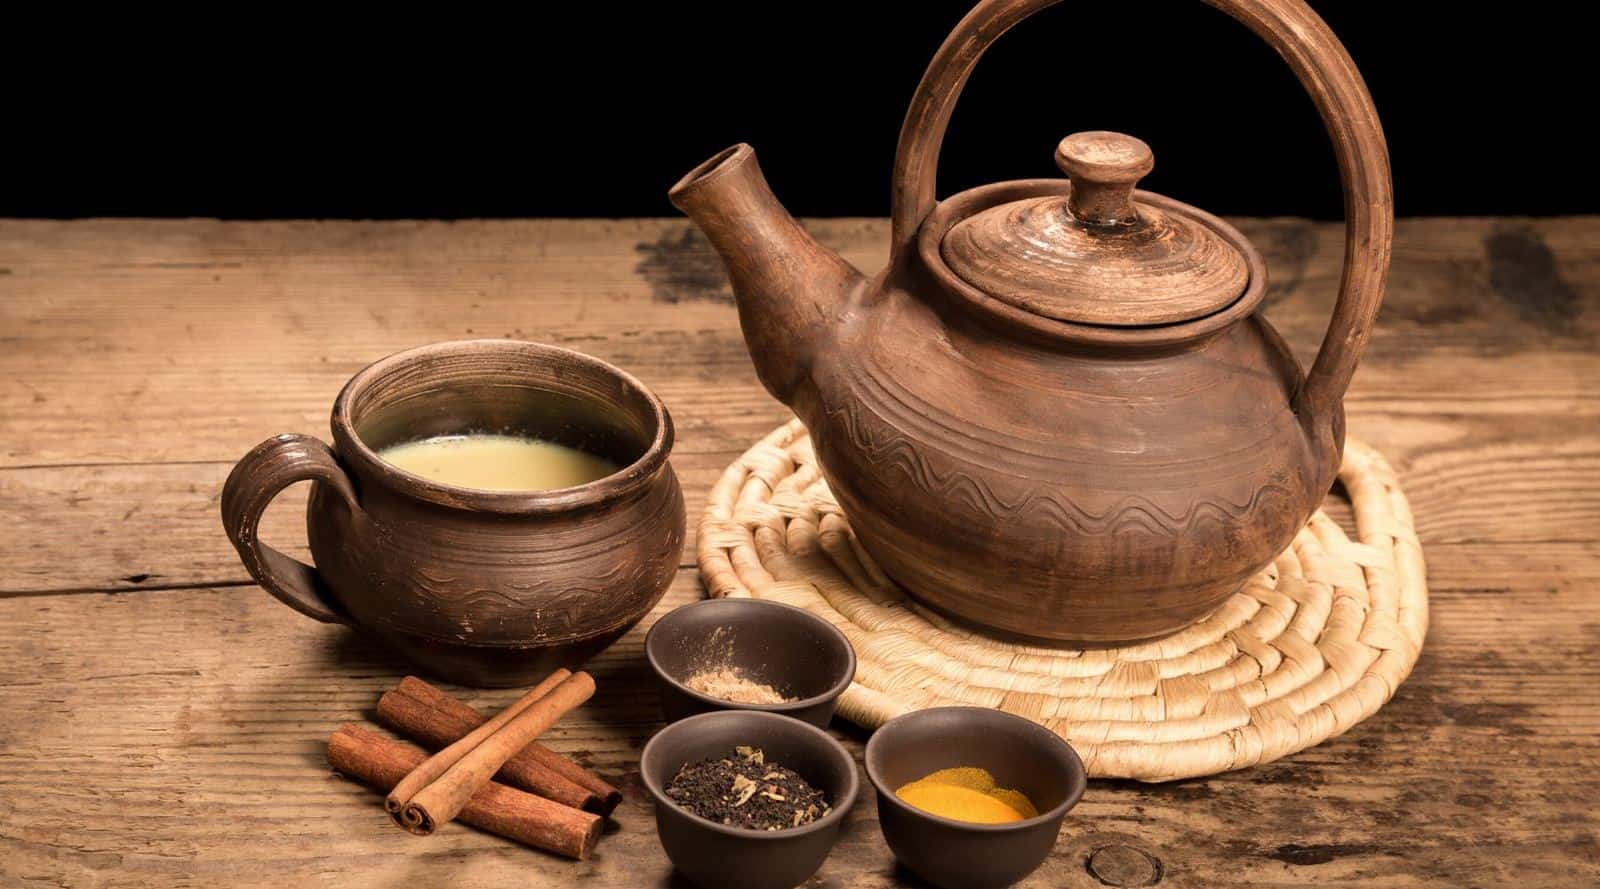 tea history in india – when did tea start in india?